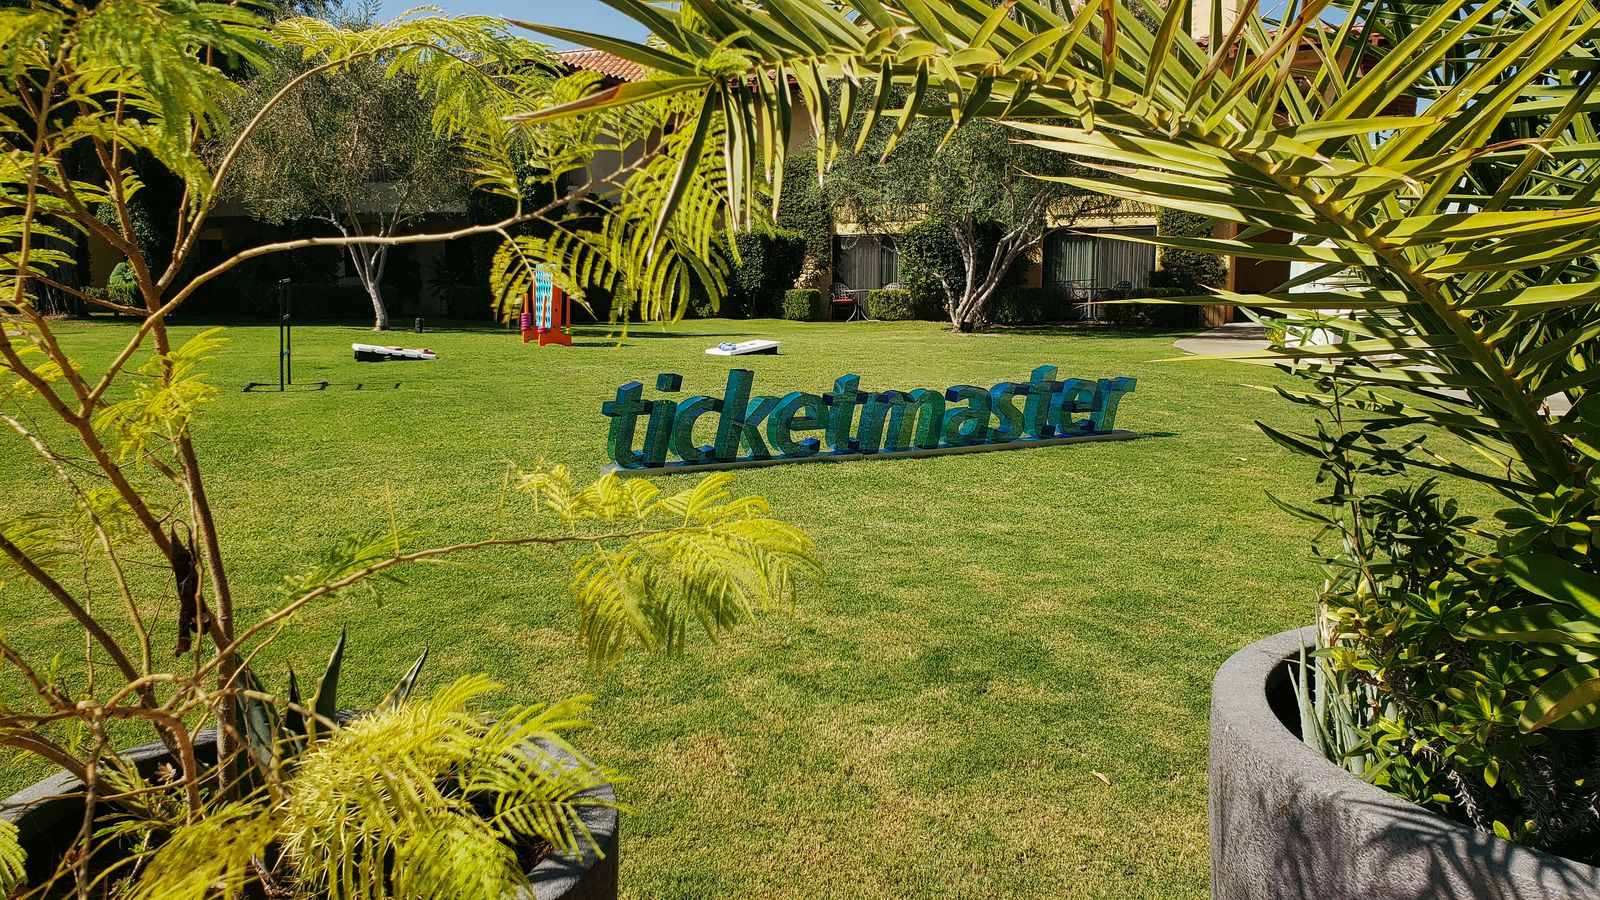 Ticketmaster 3d acrylic letters stand sign in green color on a grass displaying the company name for outdoor event branding